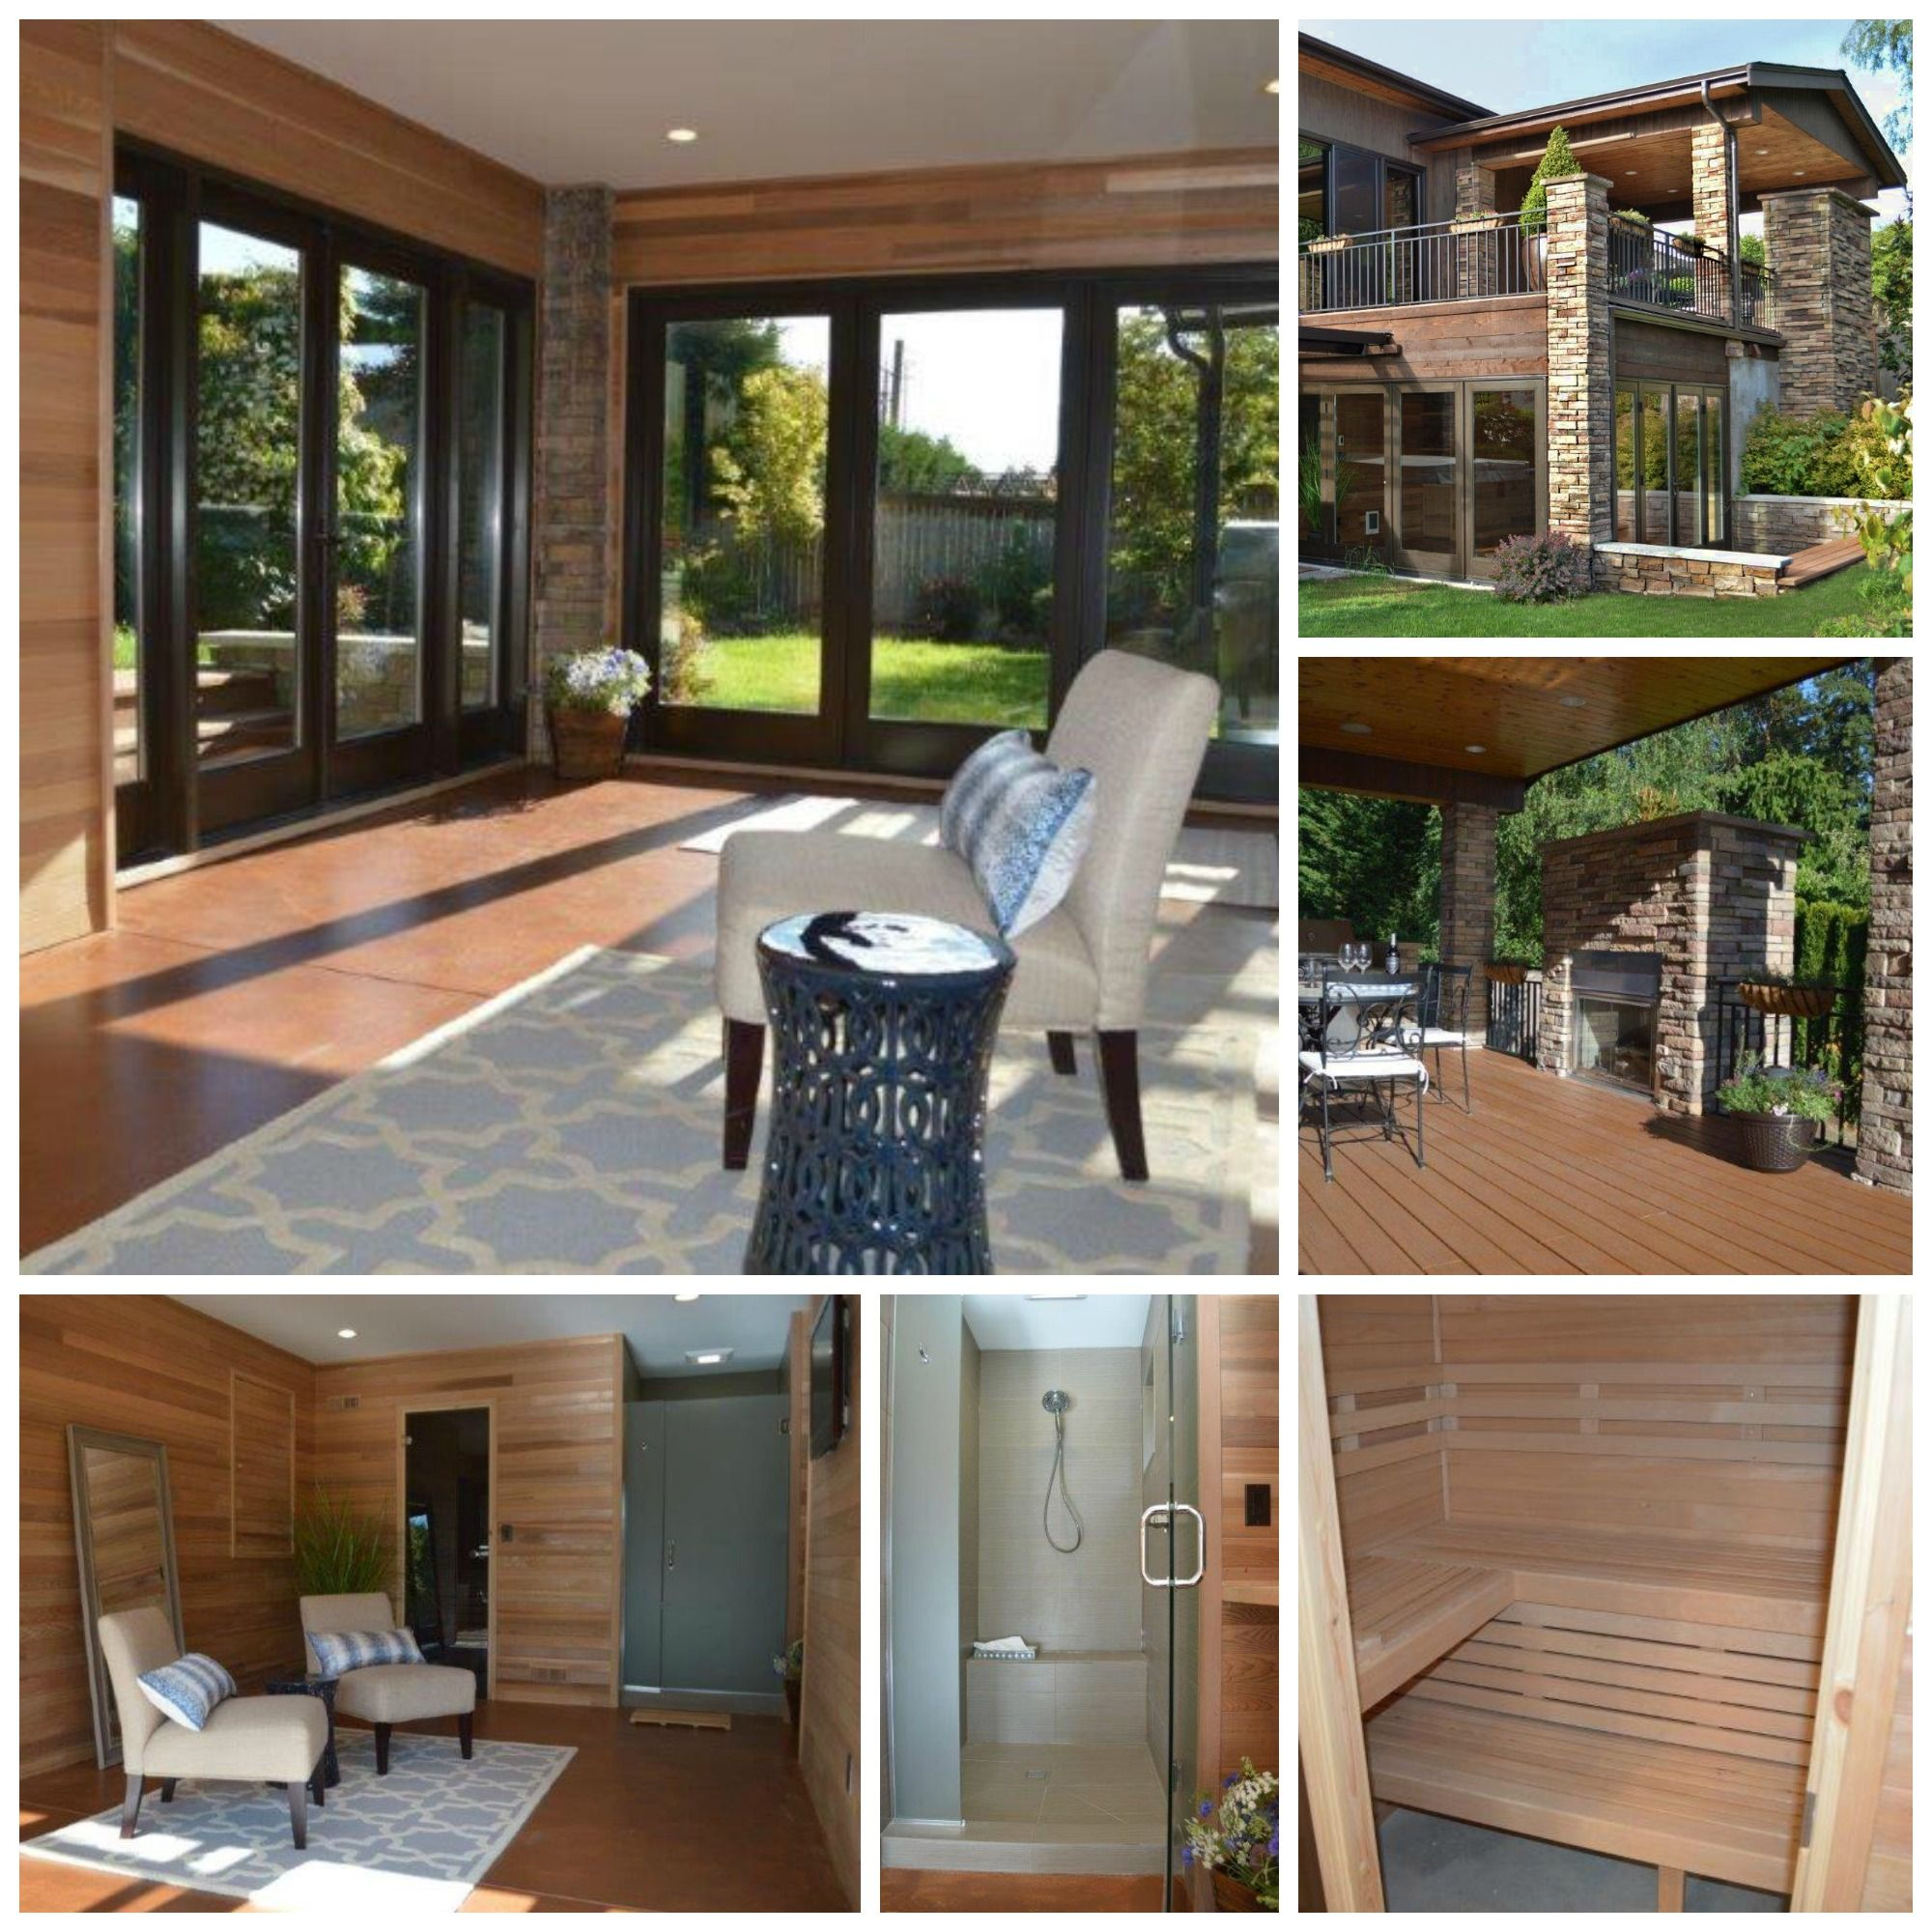 basement hot tub. Modern Yet Warm Sunroom / Spa Home Addition Under A Revitalized Deck. The New Includes Sauna, Shower, Yoga/ Relaxation Space, And Hot Tub Just Basement